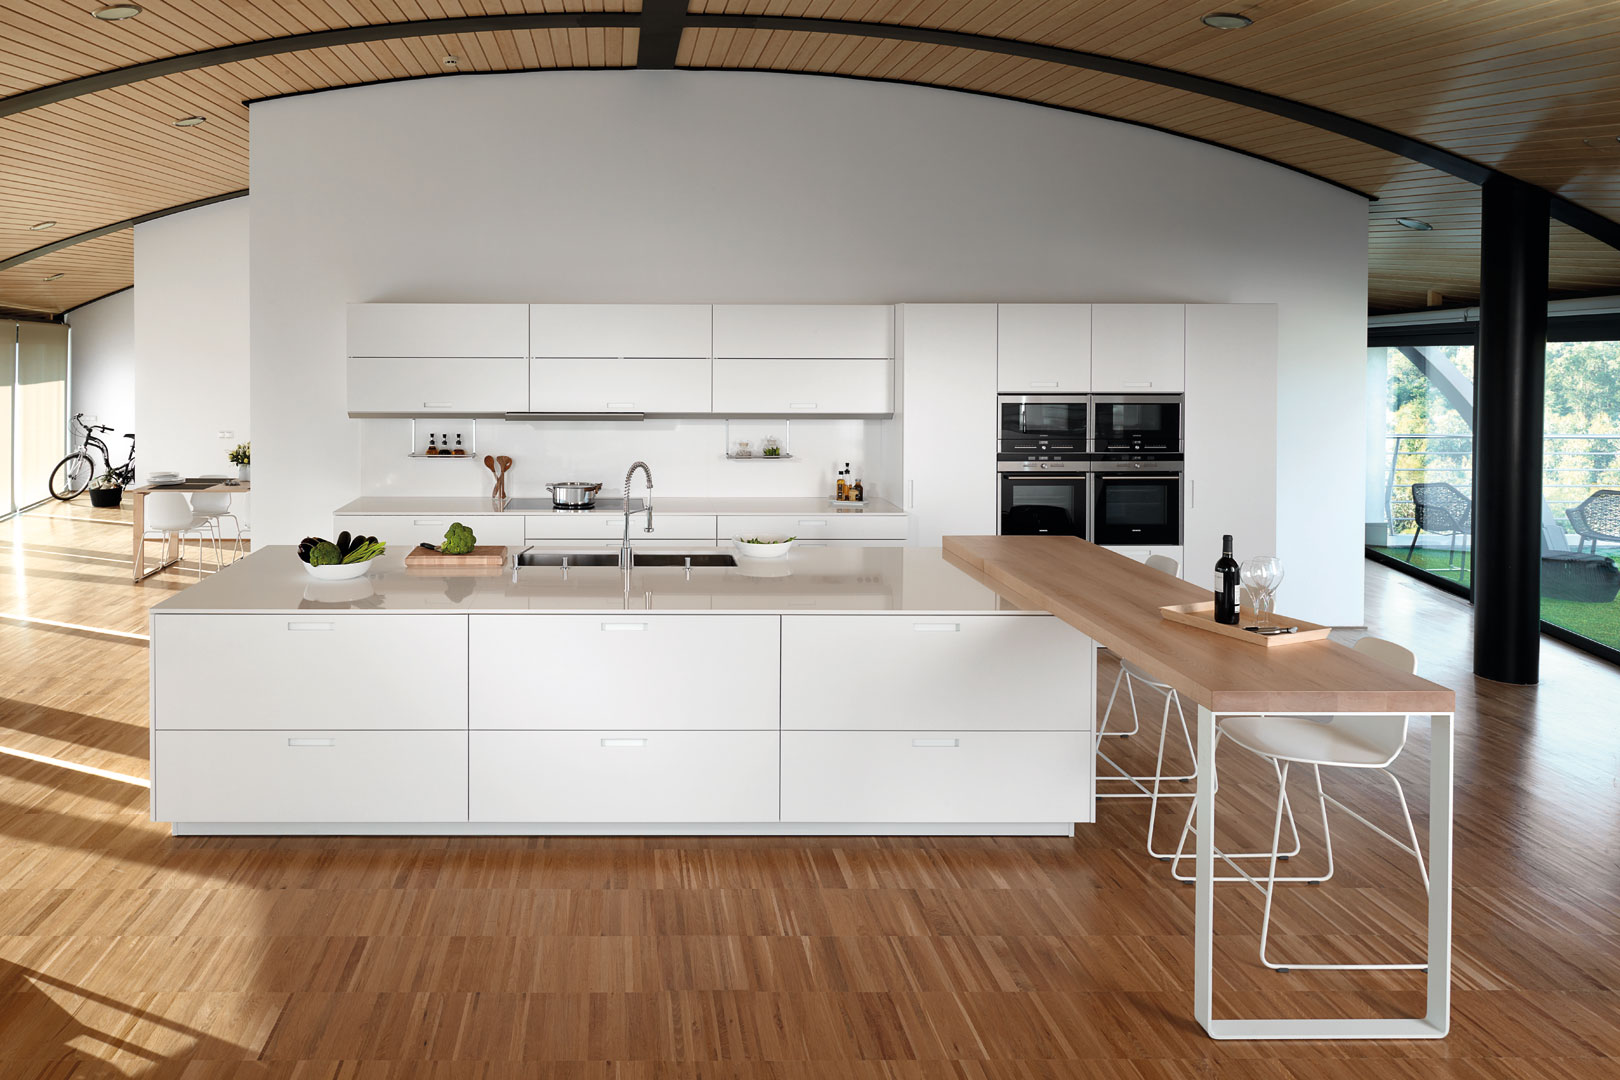 Tendencias cocinas 2018 cocinas santos santiago interiores for Decoracion de interiores cocinas